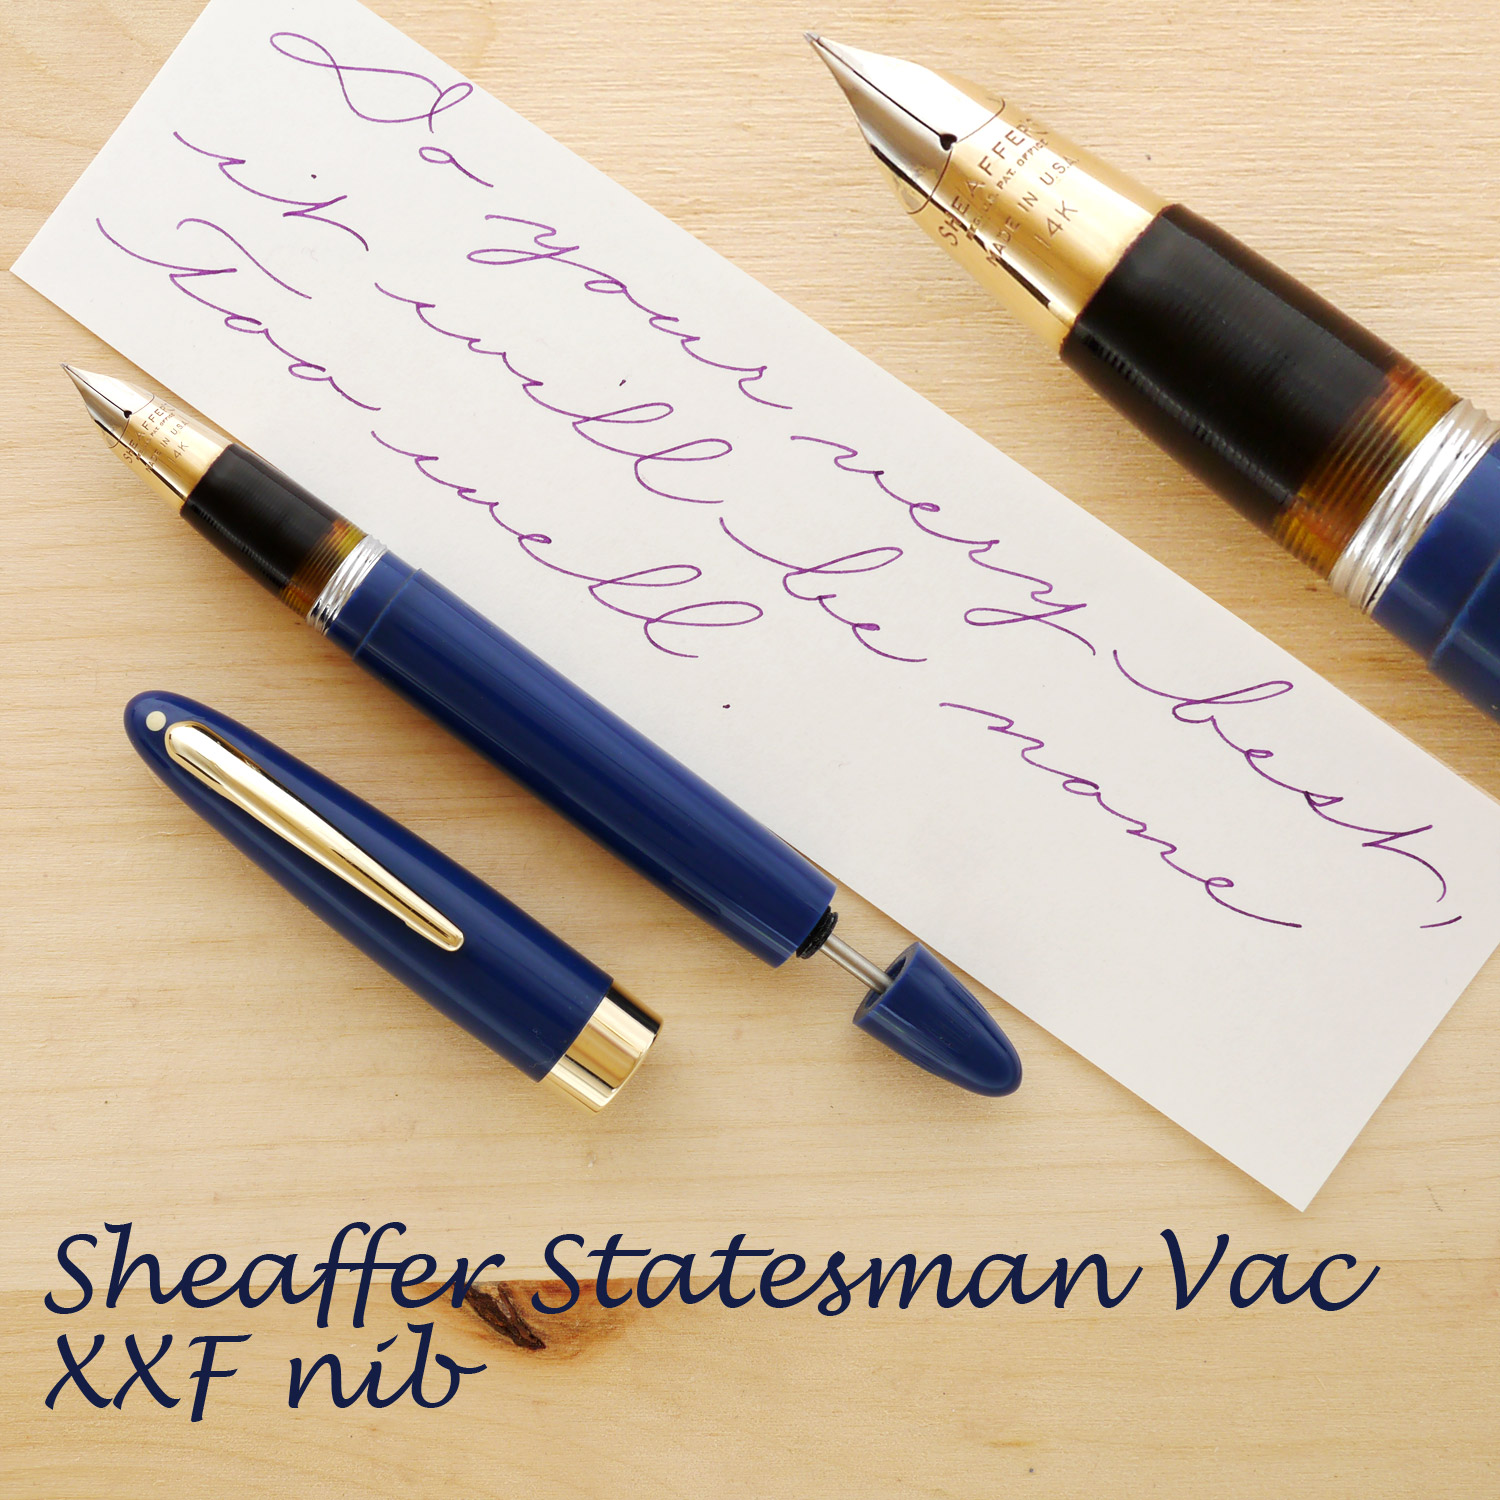 Sheaffer Statesman Vac Blue, XXF, uncapped and with the plunger rod partially extended